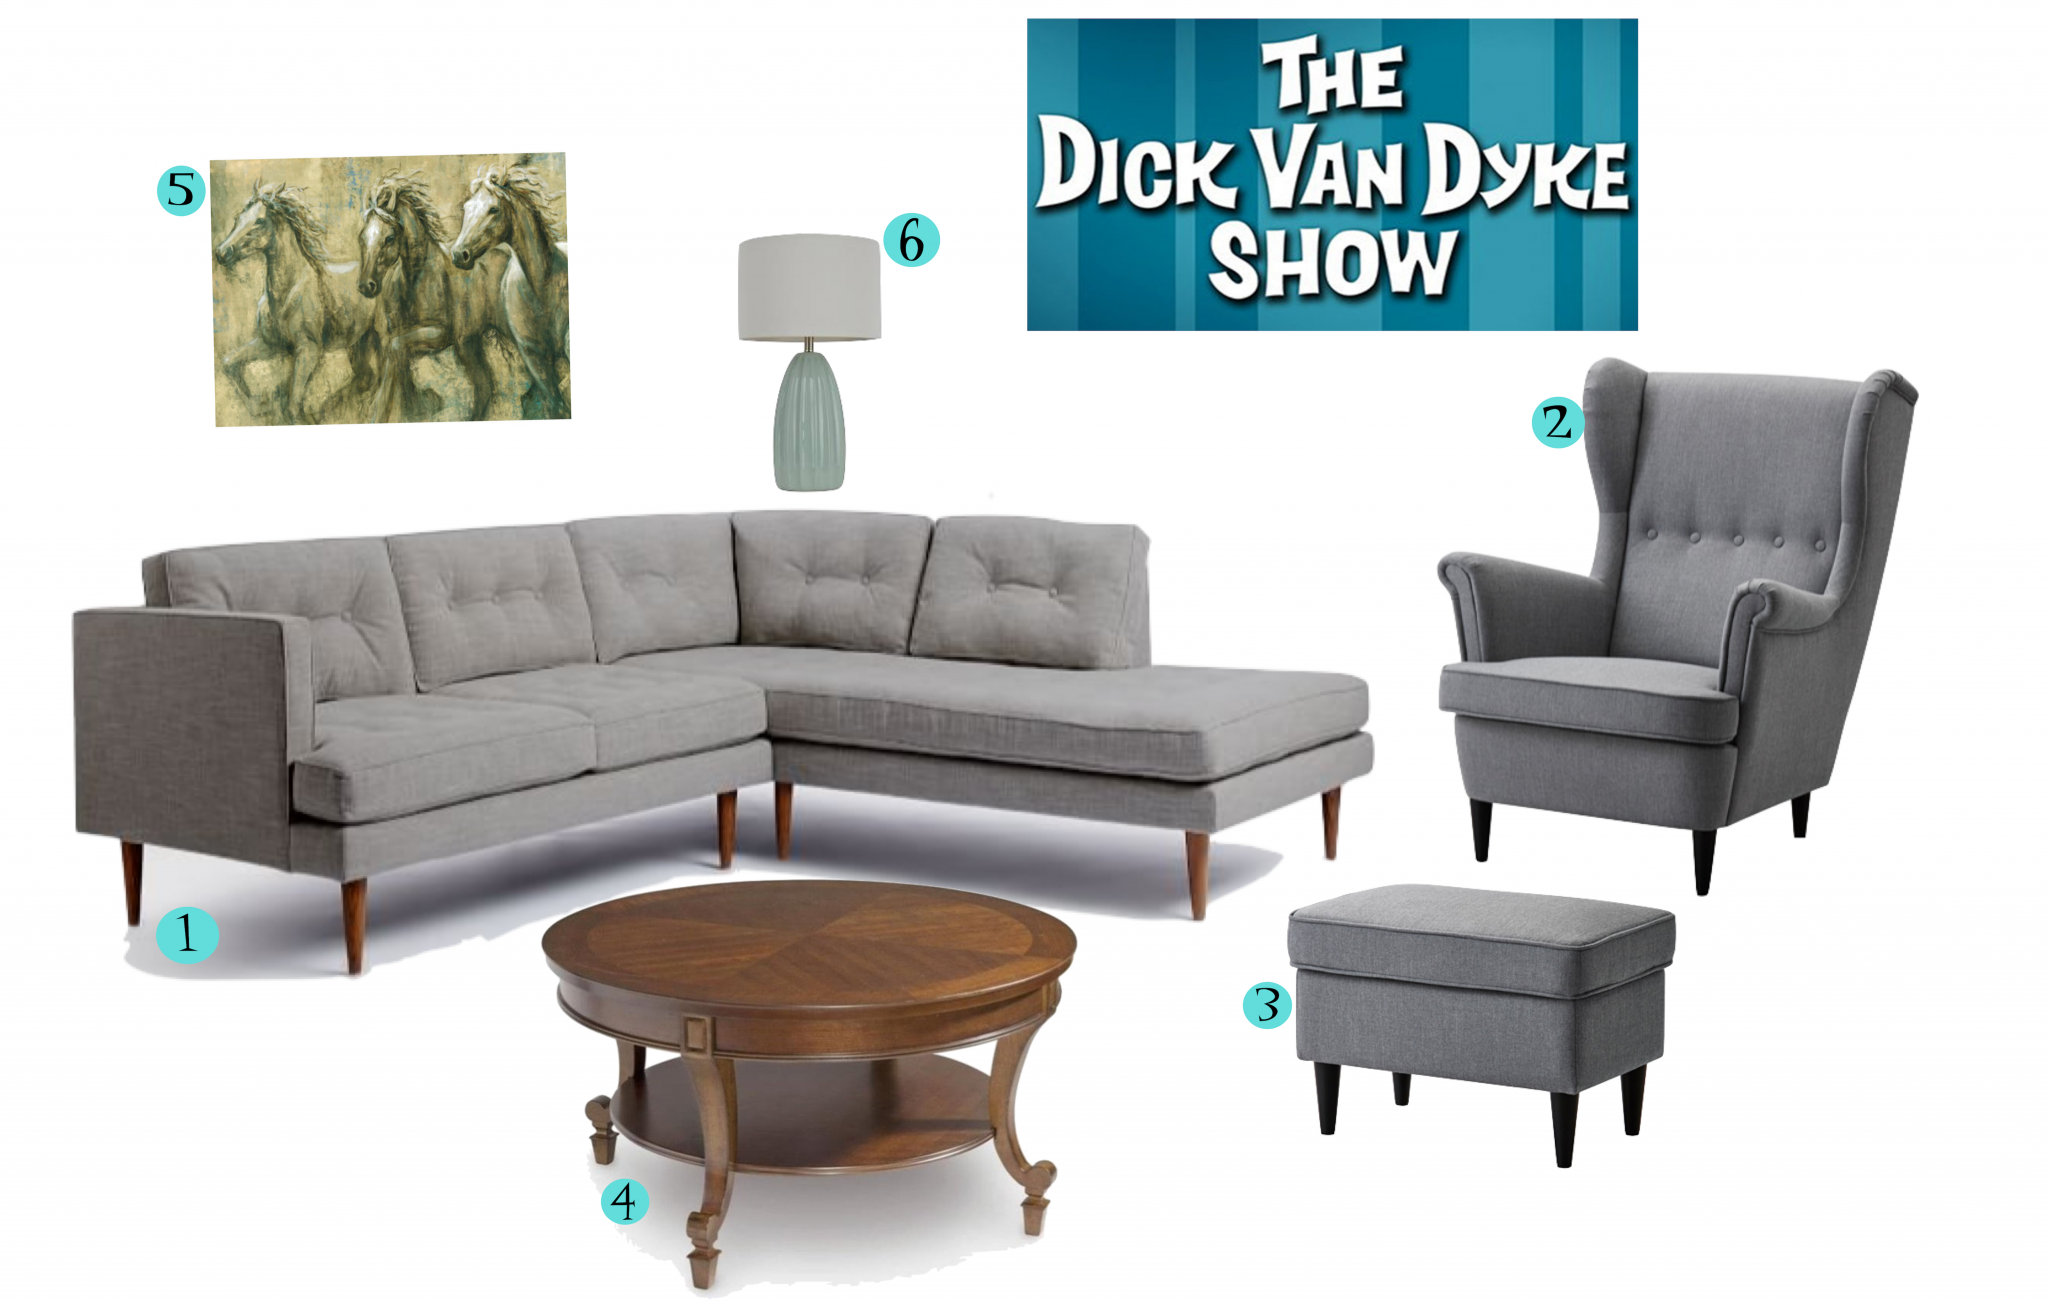 Dick Van Dyke Show Living Room